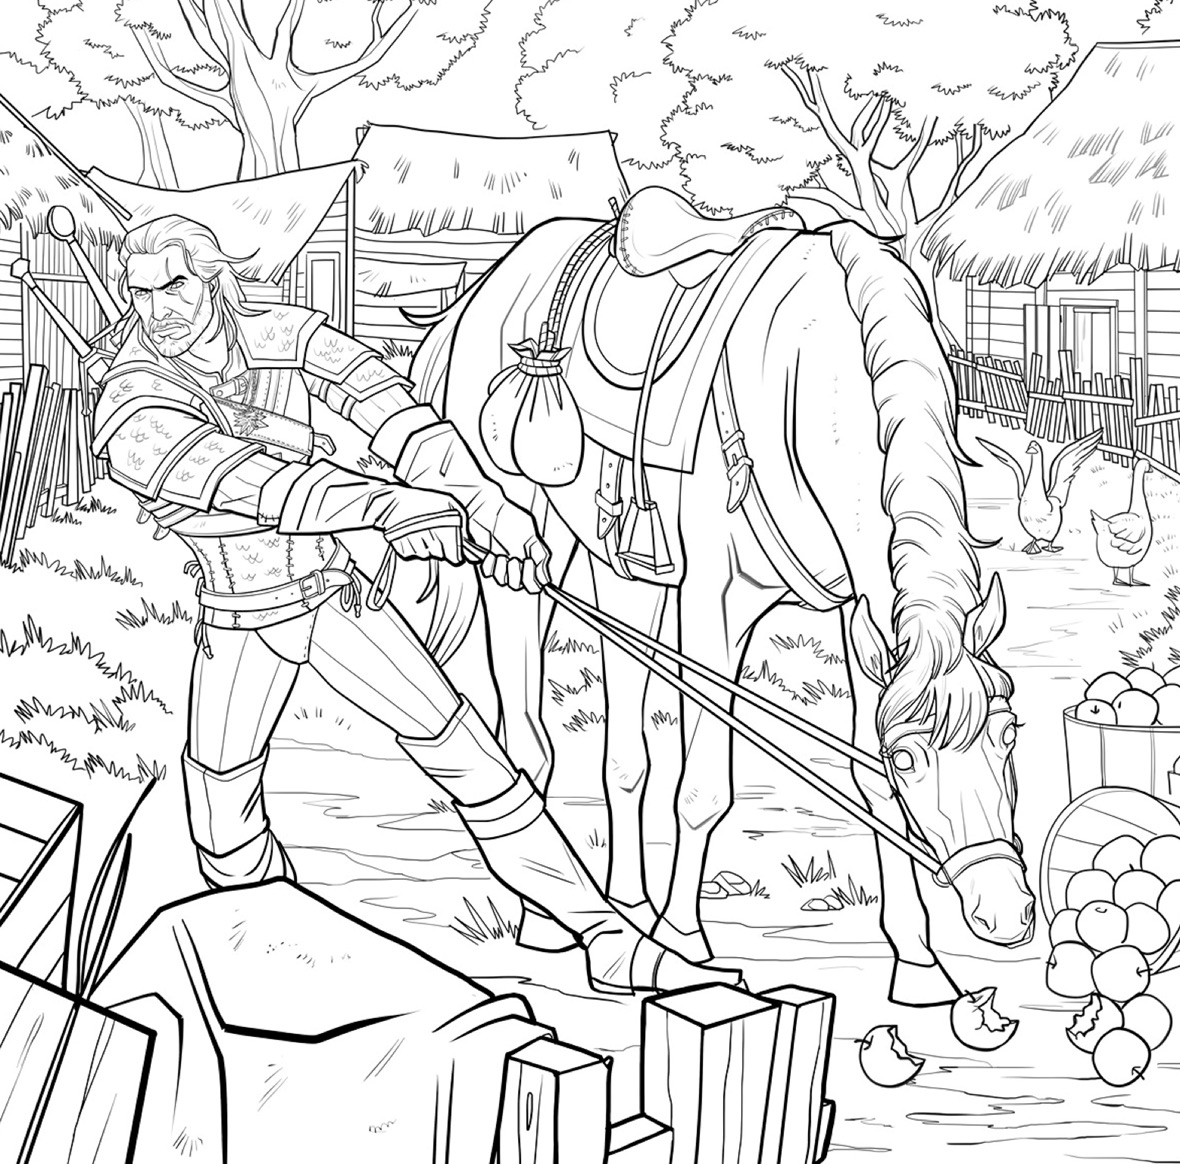 finally the witcher gets its own coloring book complete with bath